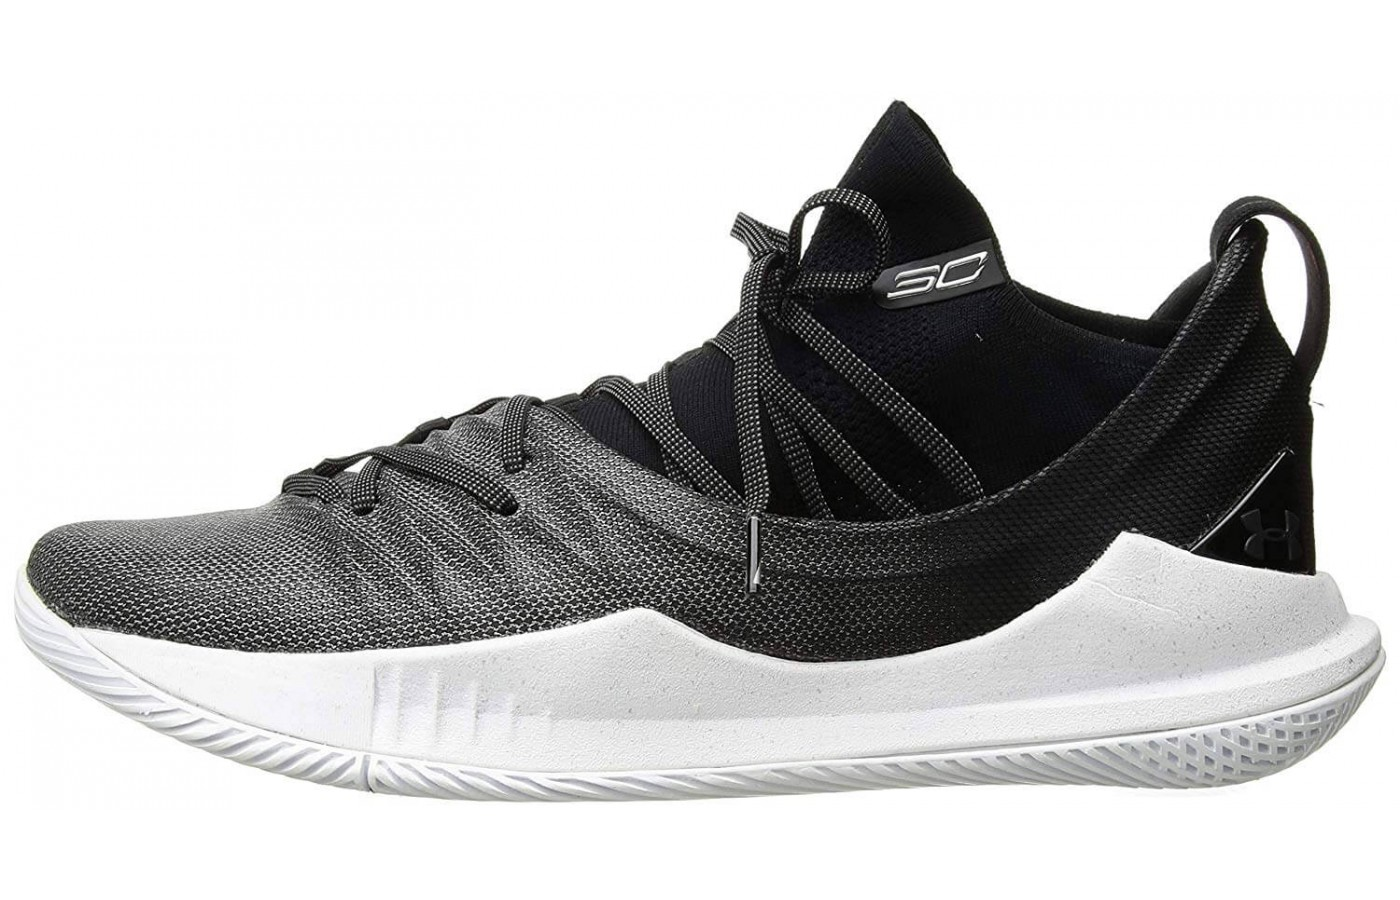 Under Armour Men's Curry 5 Basketball Shoe